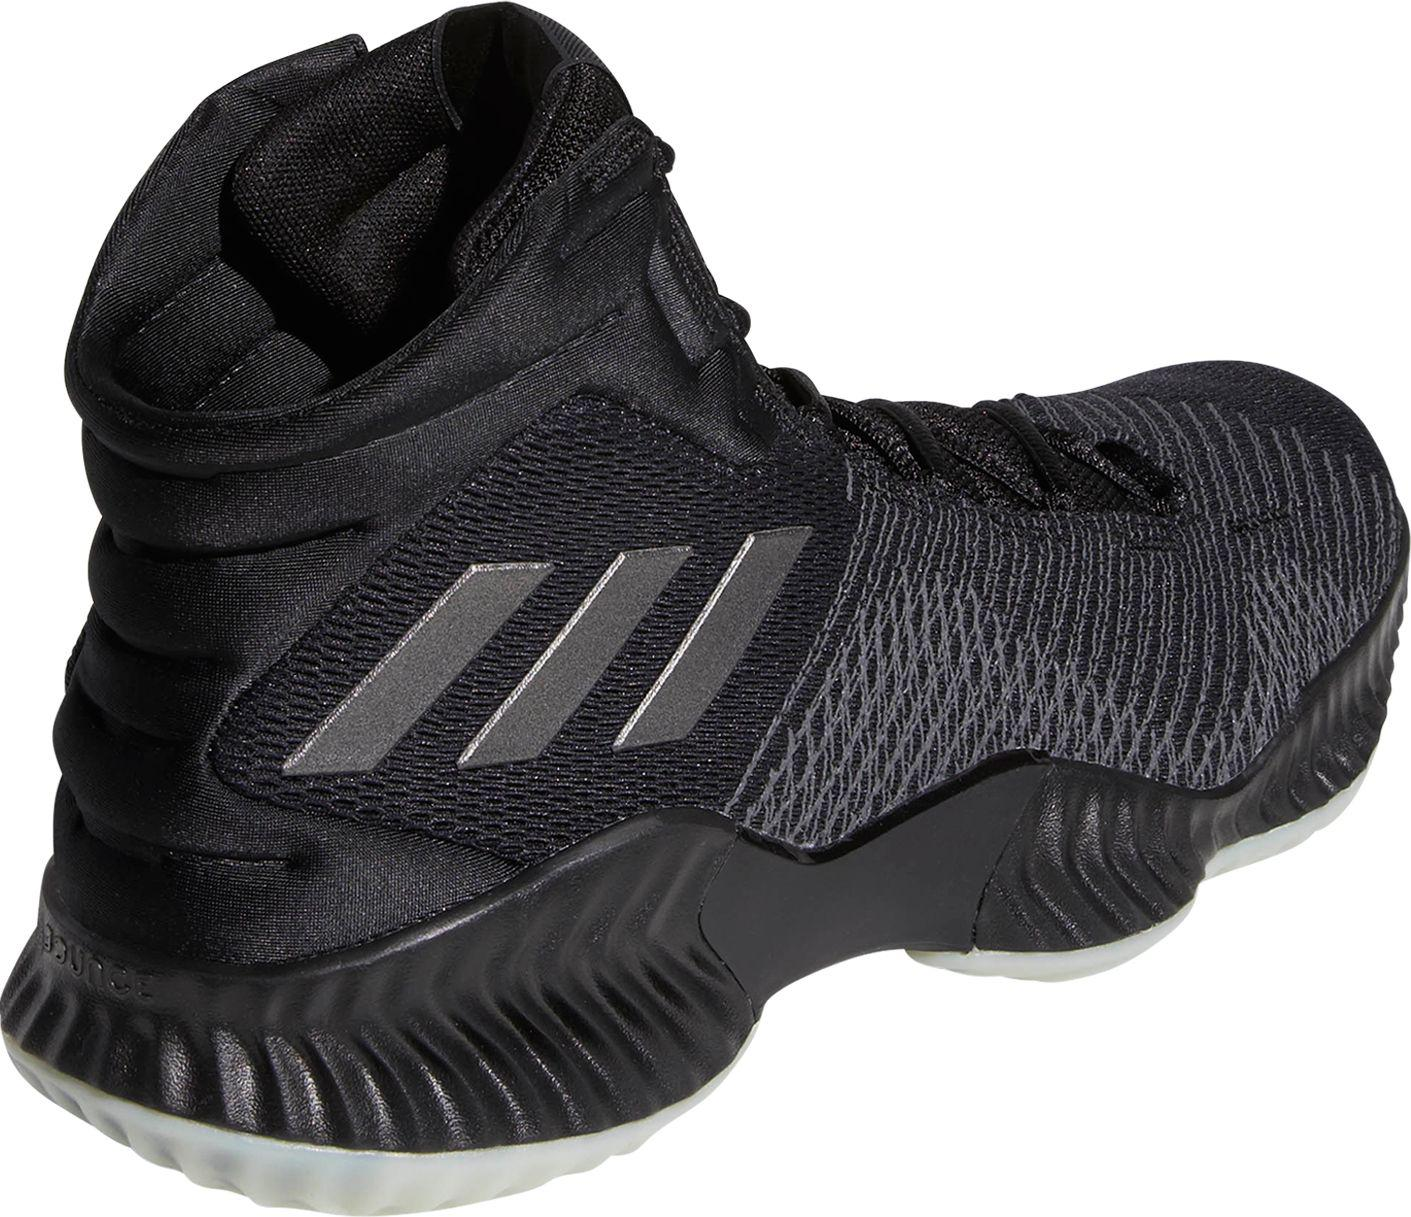 62f3412994ae8 Lyst - adidas Pro Bounce 2018 Basketball Shoes in Black for Men